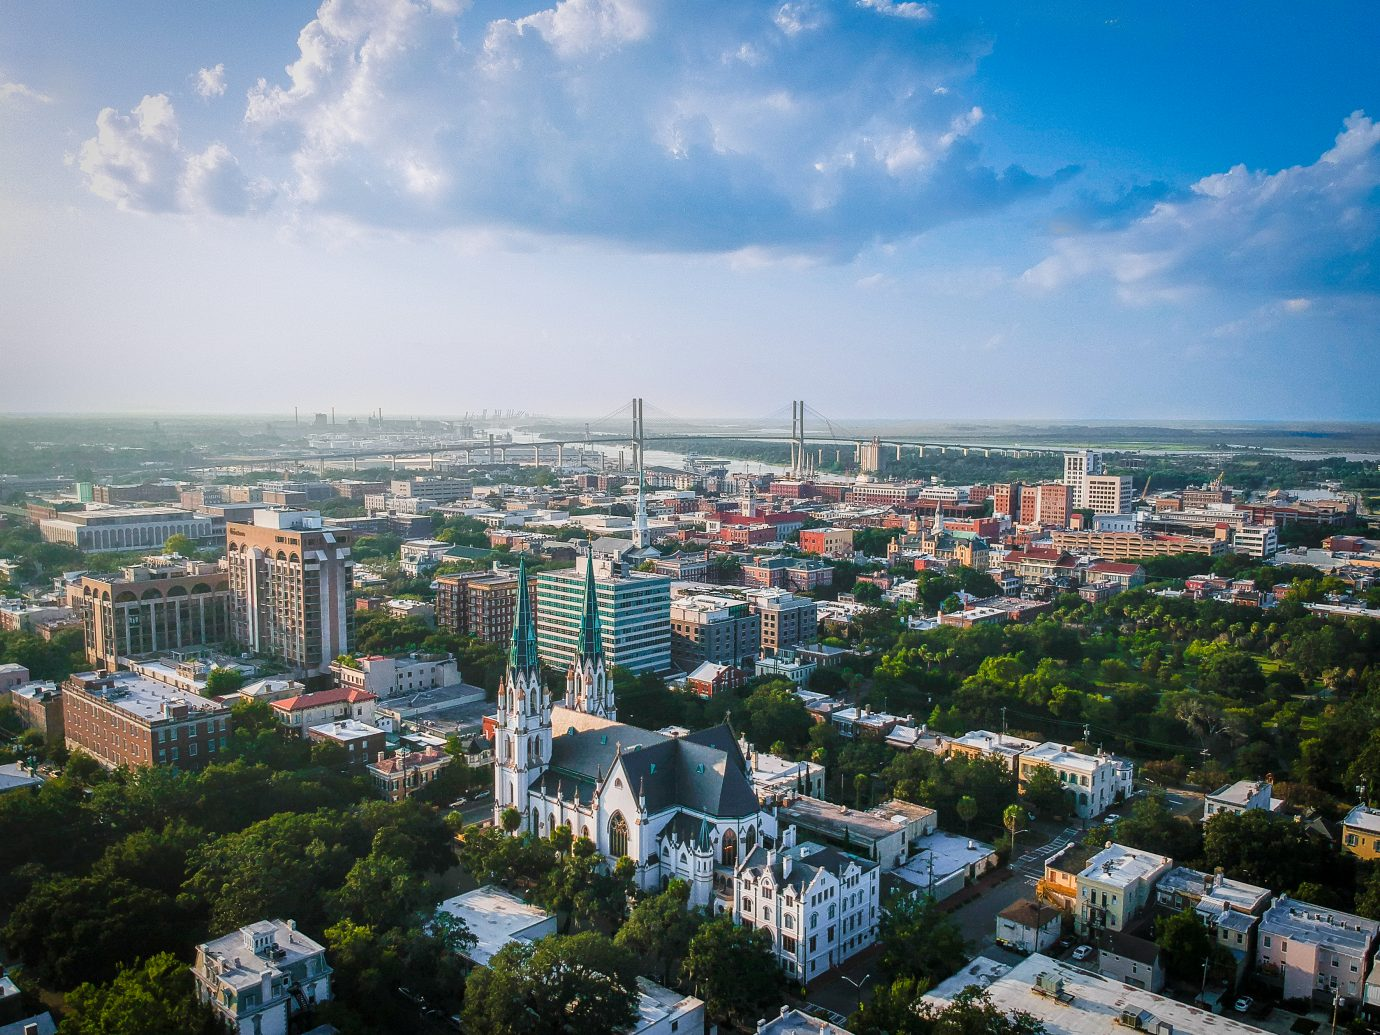 Series of shots taken high above Savannah, GA